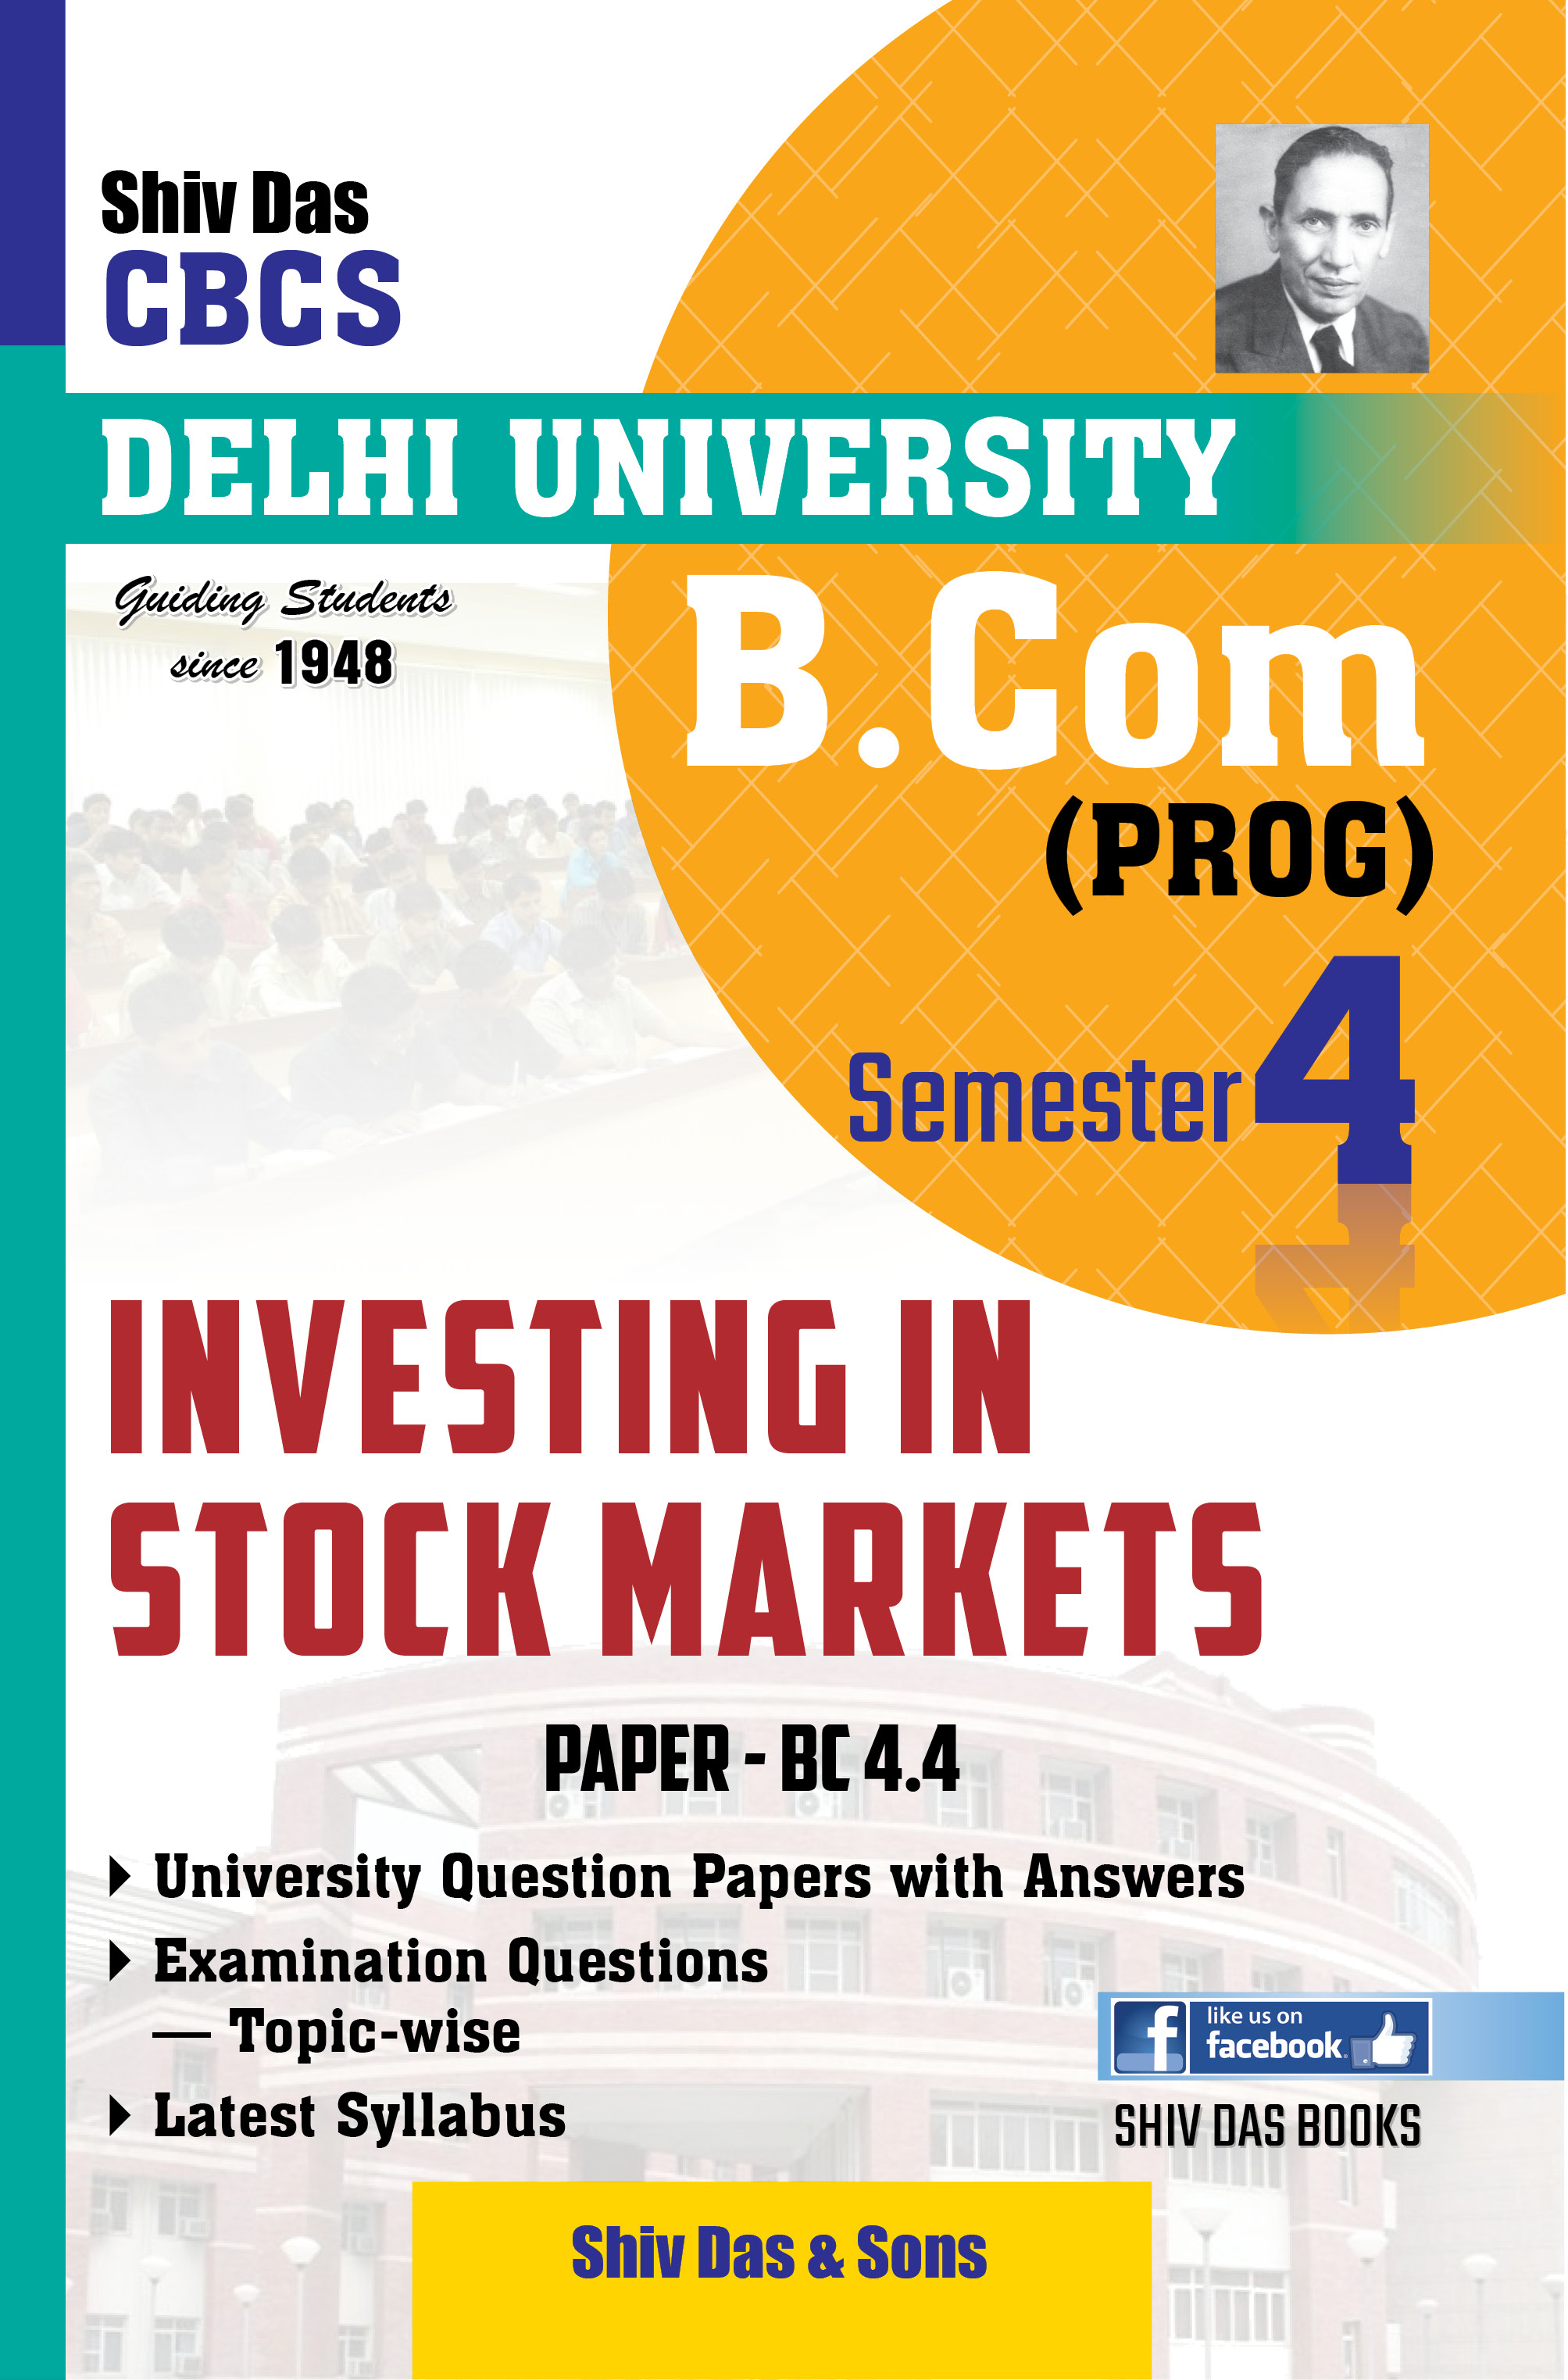 Investing in Stock Markets for B.Com Prog Semester-4